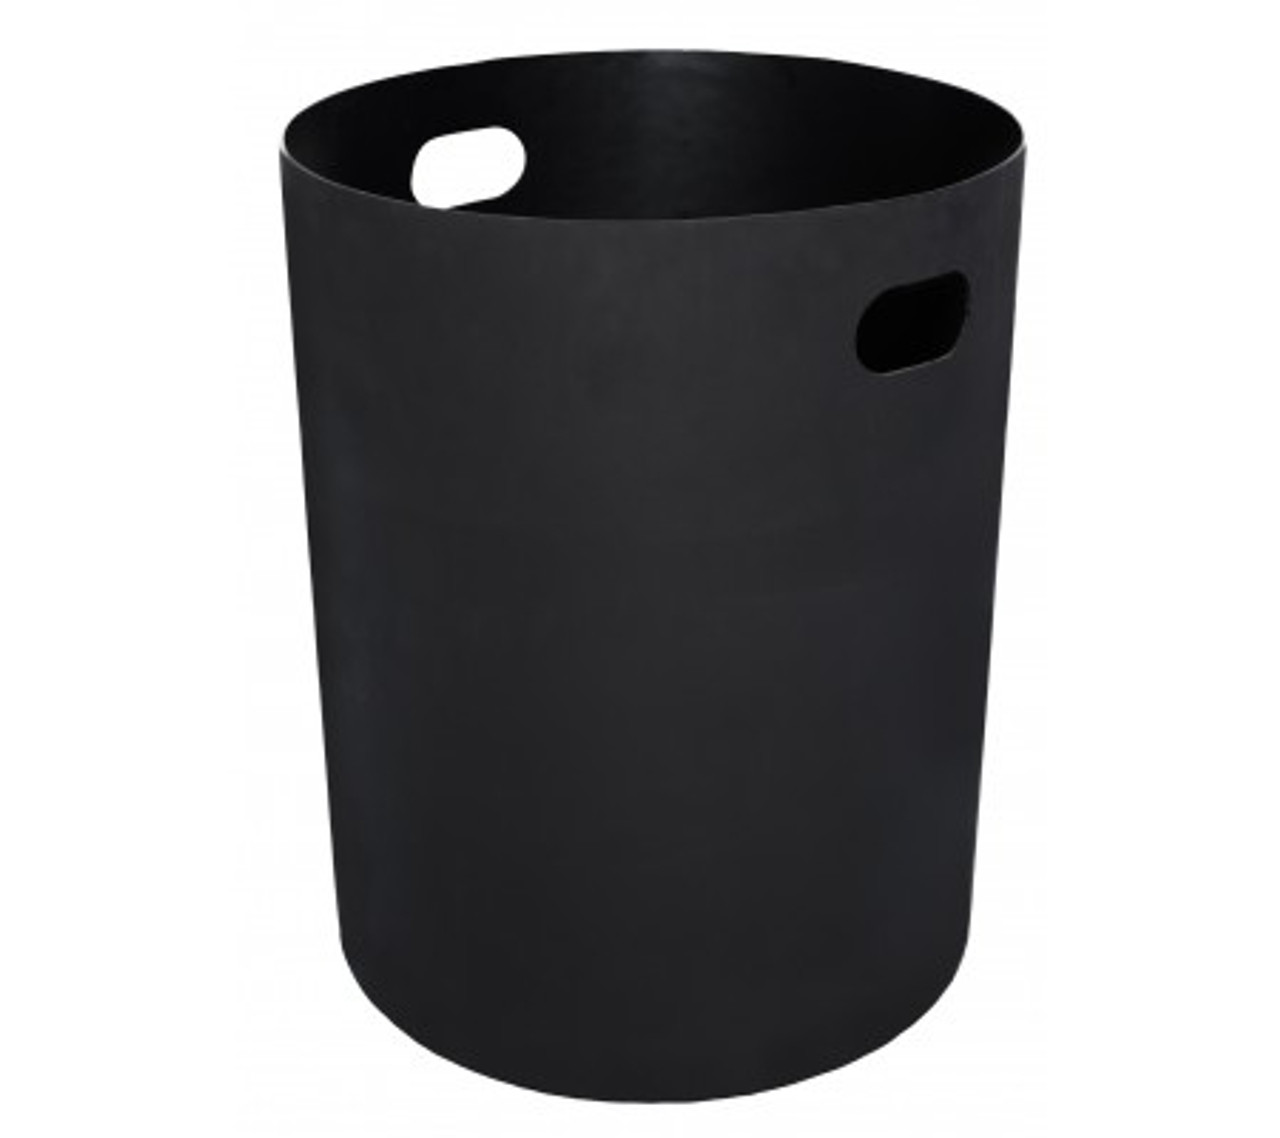 35.5 Gallon Plastic Liner for Streetscape Metal Outdoor Trash Cans 35-2129 FG